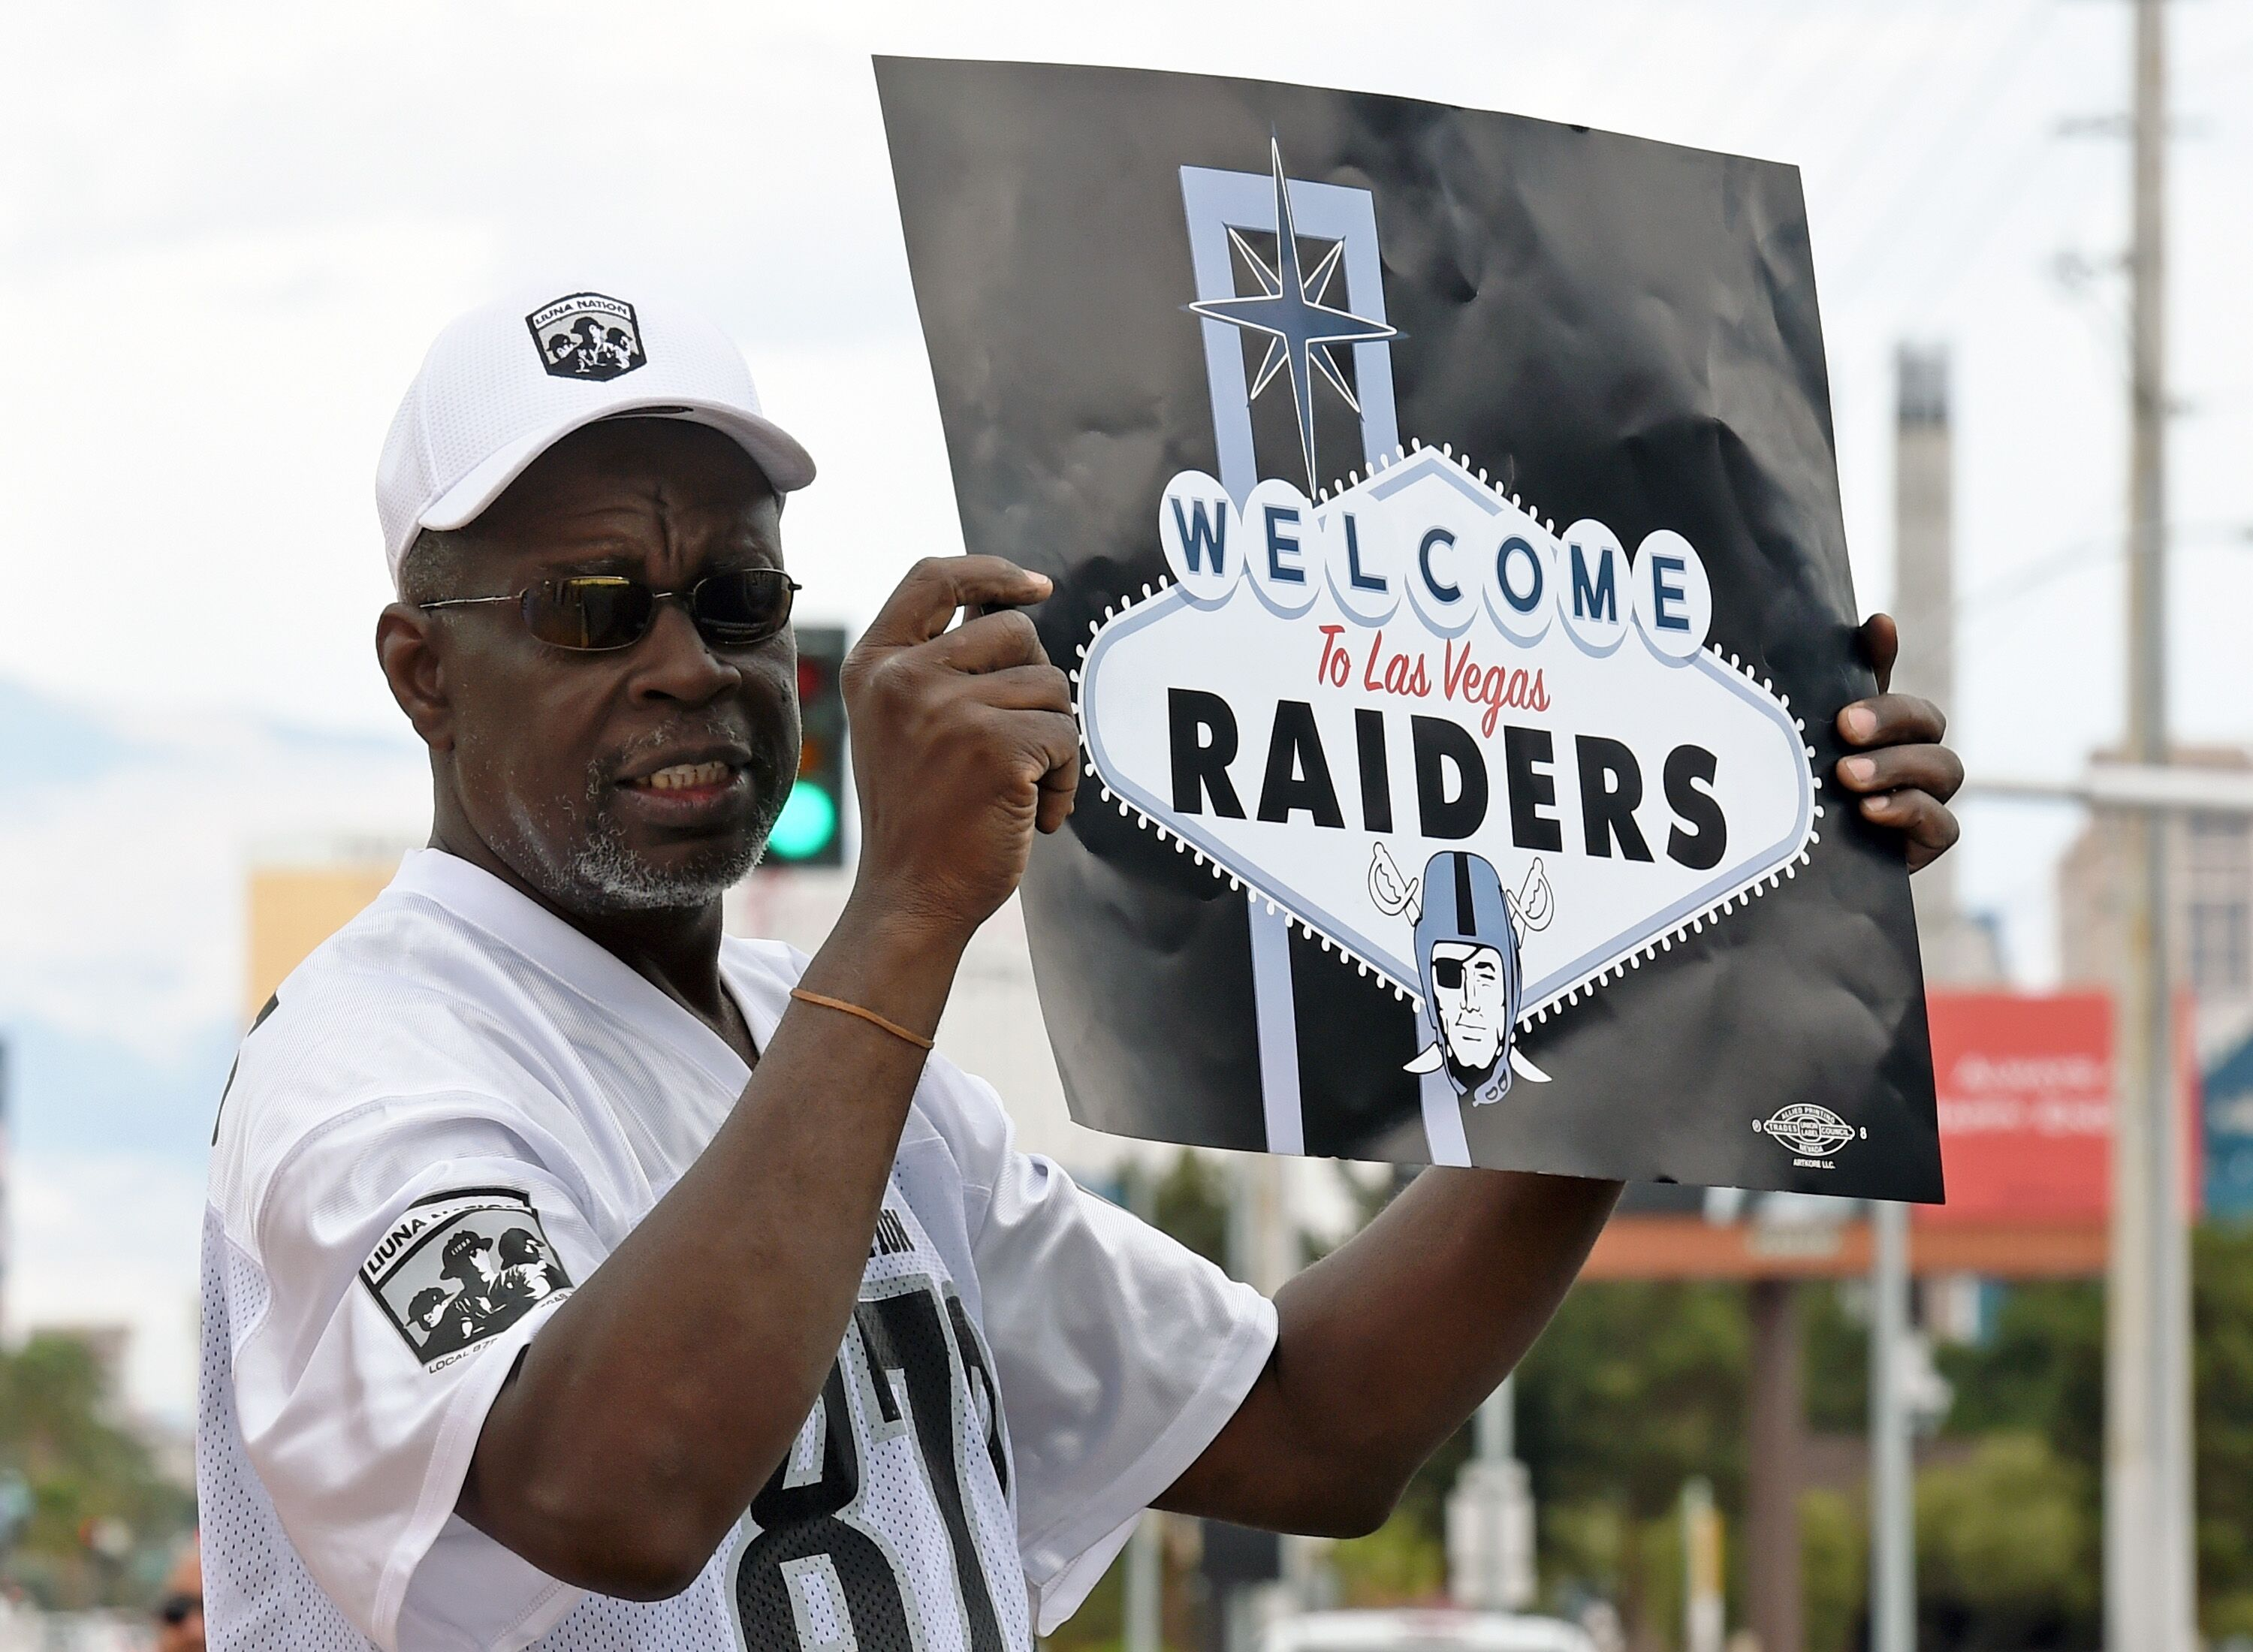 658464862-fans-celebrate-nfl-relocation-of-raiders-to-las-vegas.jpg